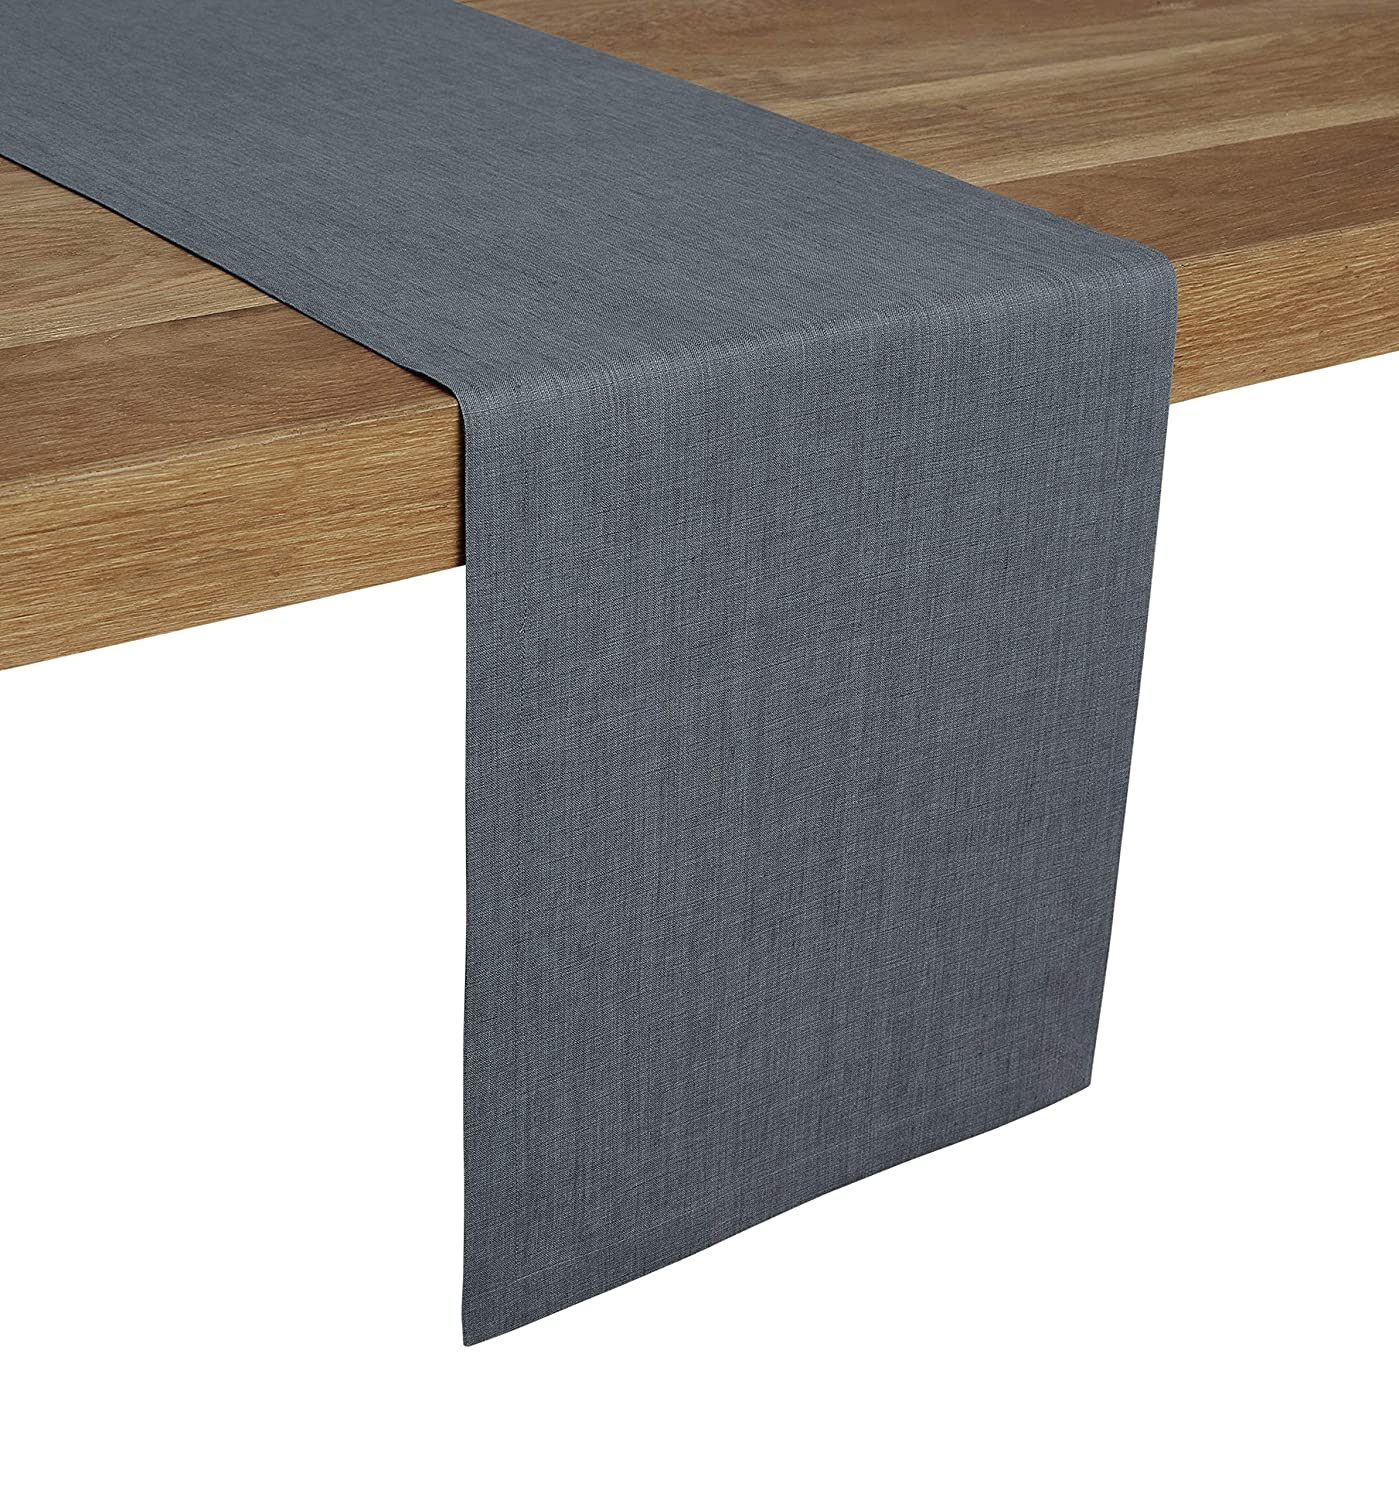 Tesoro Runner Natural and Handcrafted from European Flax Light Graphite Solino Home 100/% Pure Linen Table Runner 14 x 36 Inch